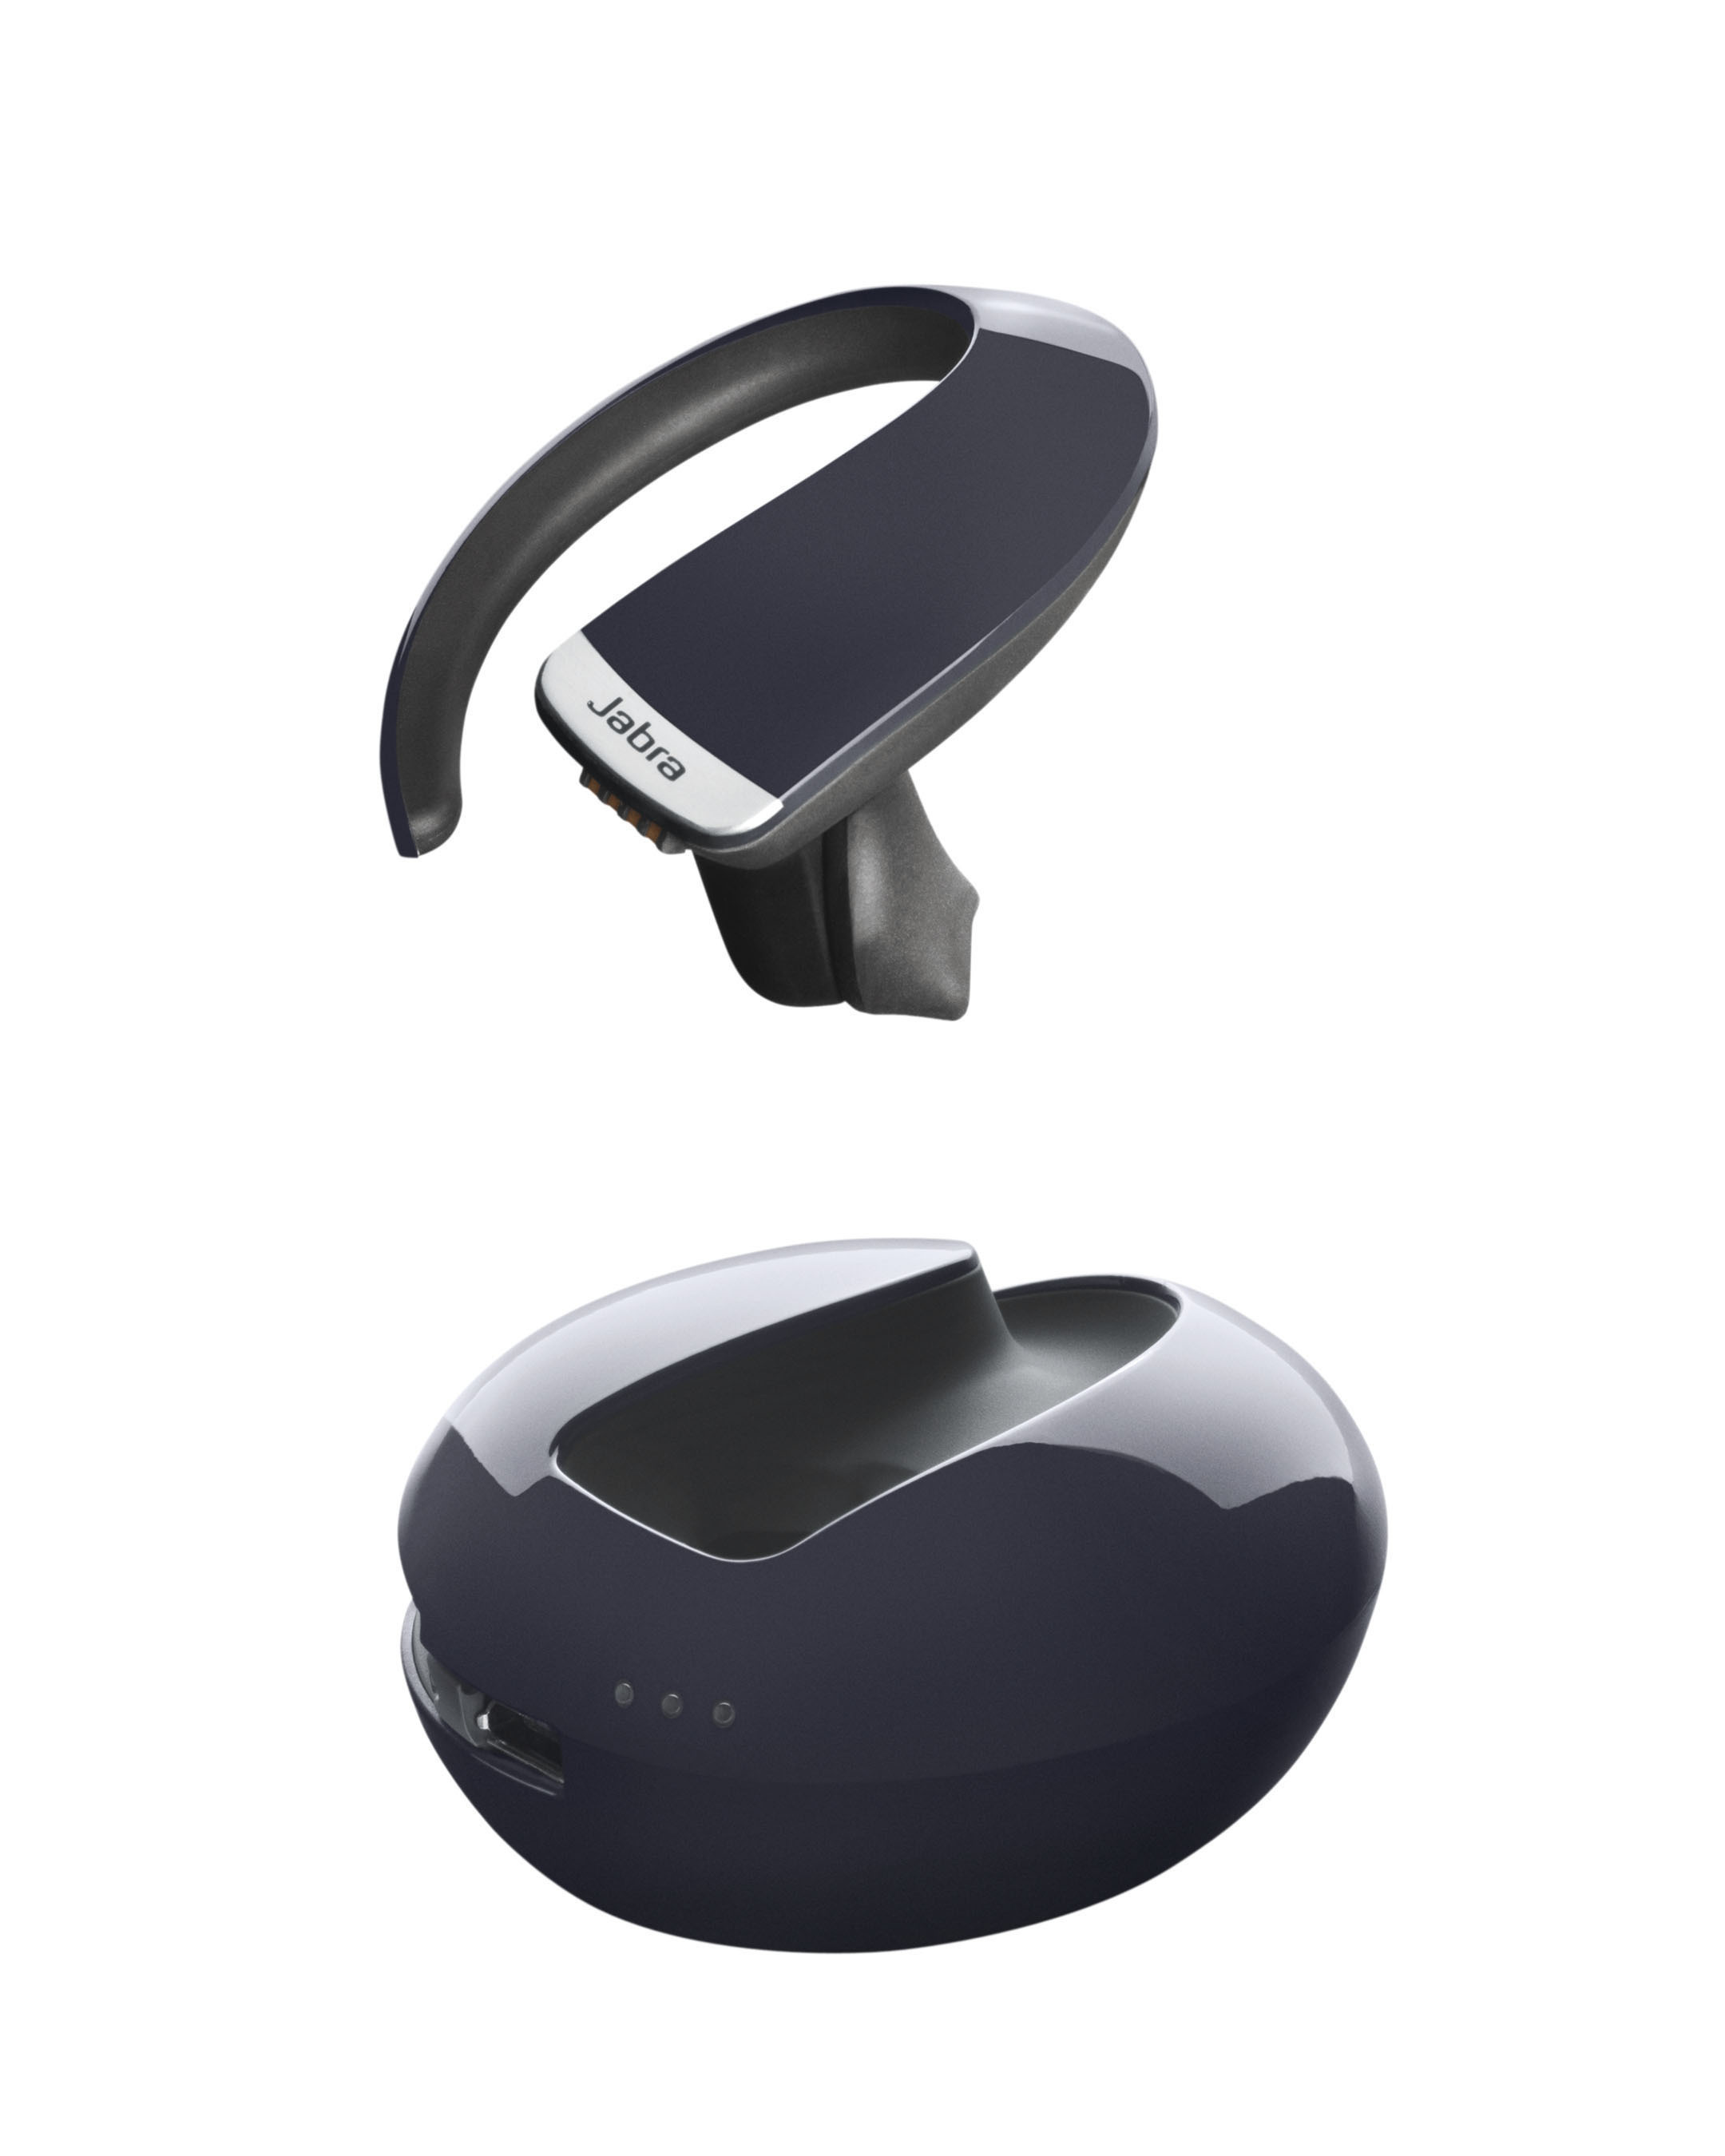 Bluetooth Headset Jabra Stone2: Jabra Stone2 Bluetooth Headset Take Calls With Your Voice